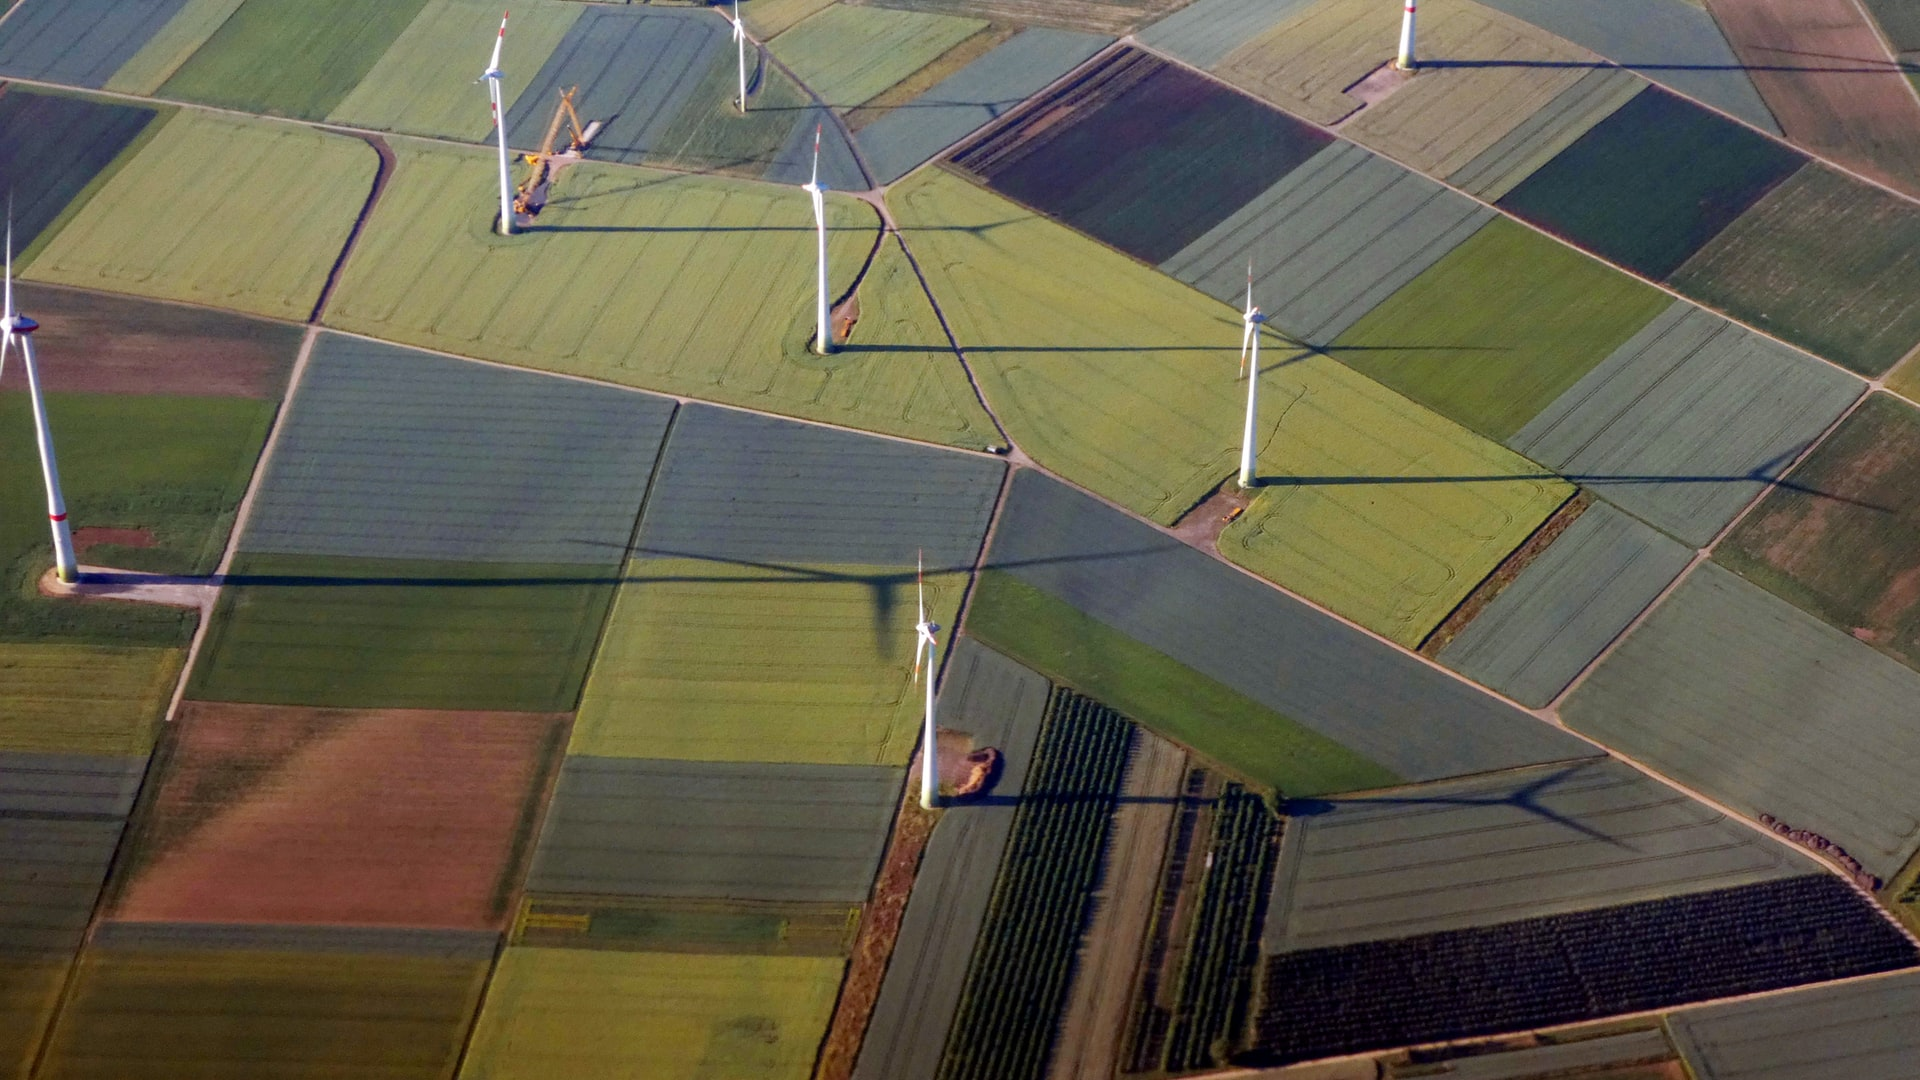 Onshore renewables could boost UK economy by £29bn